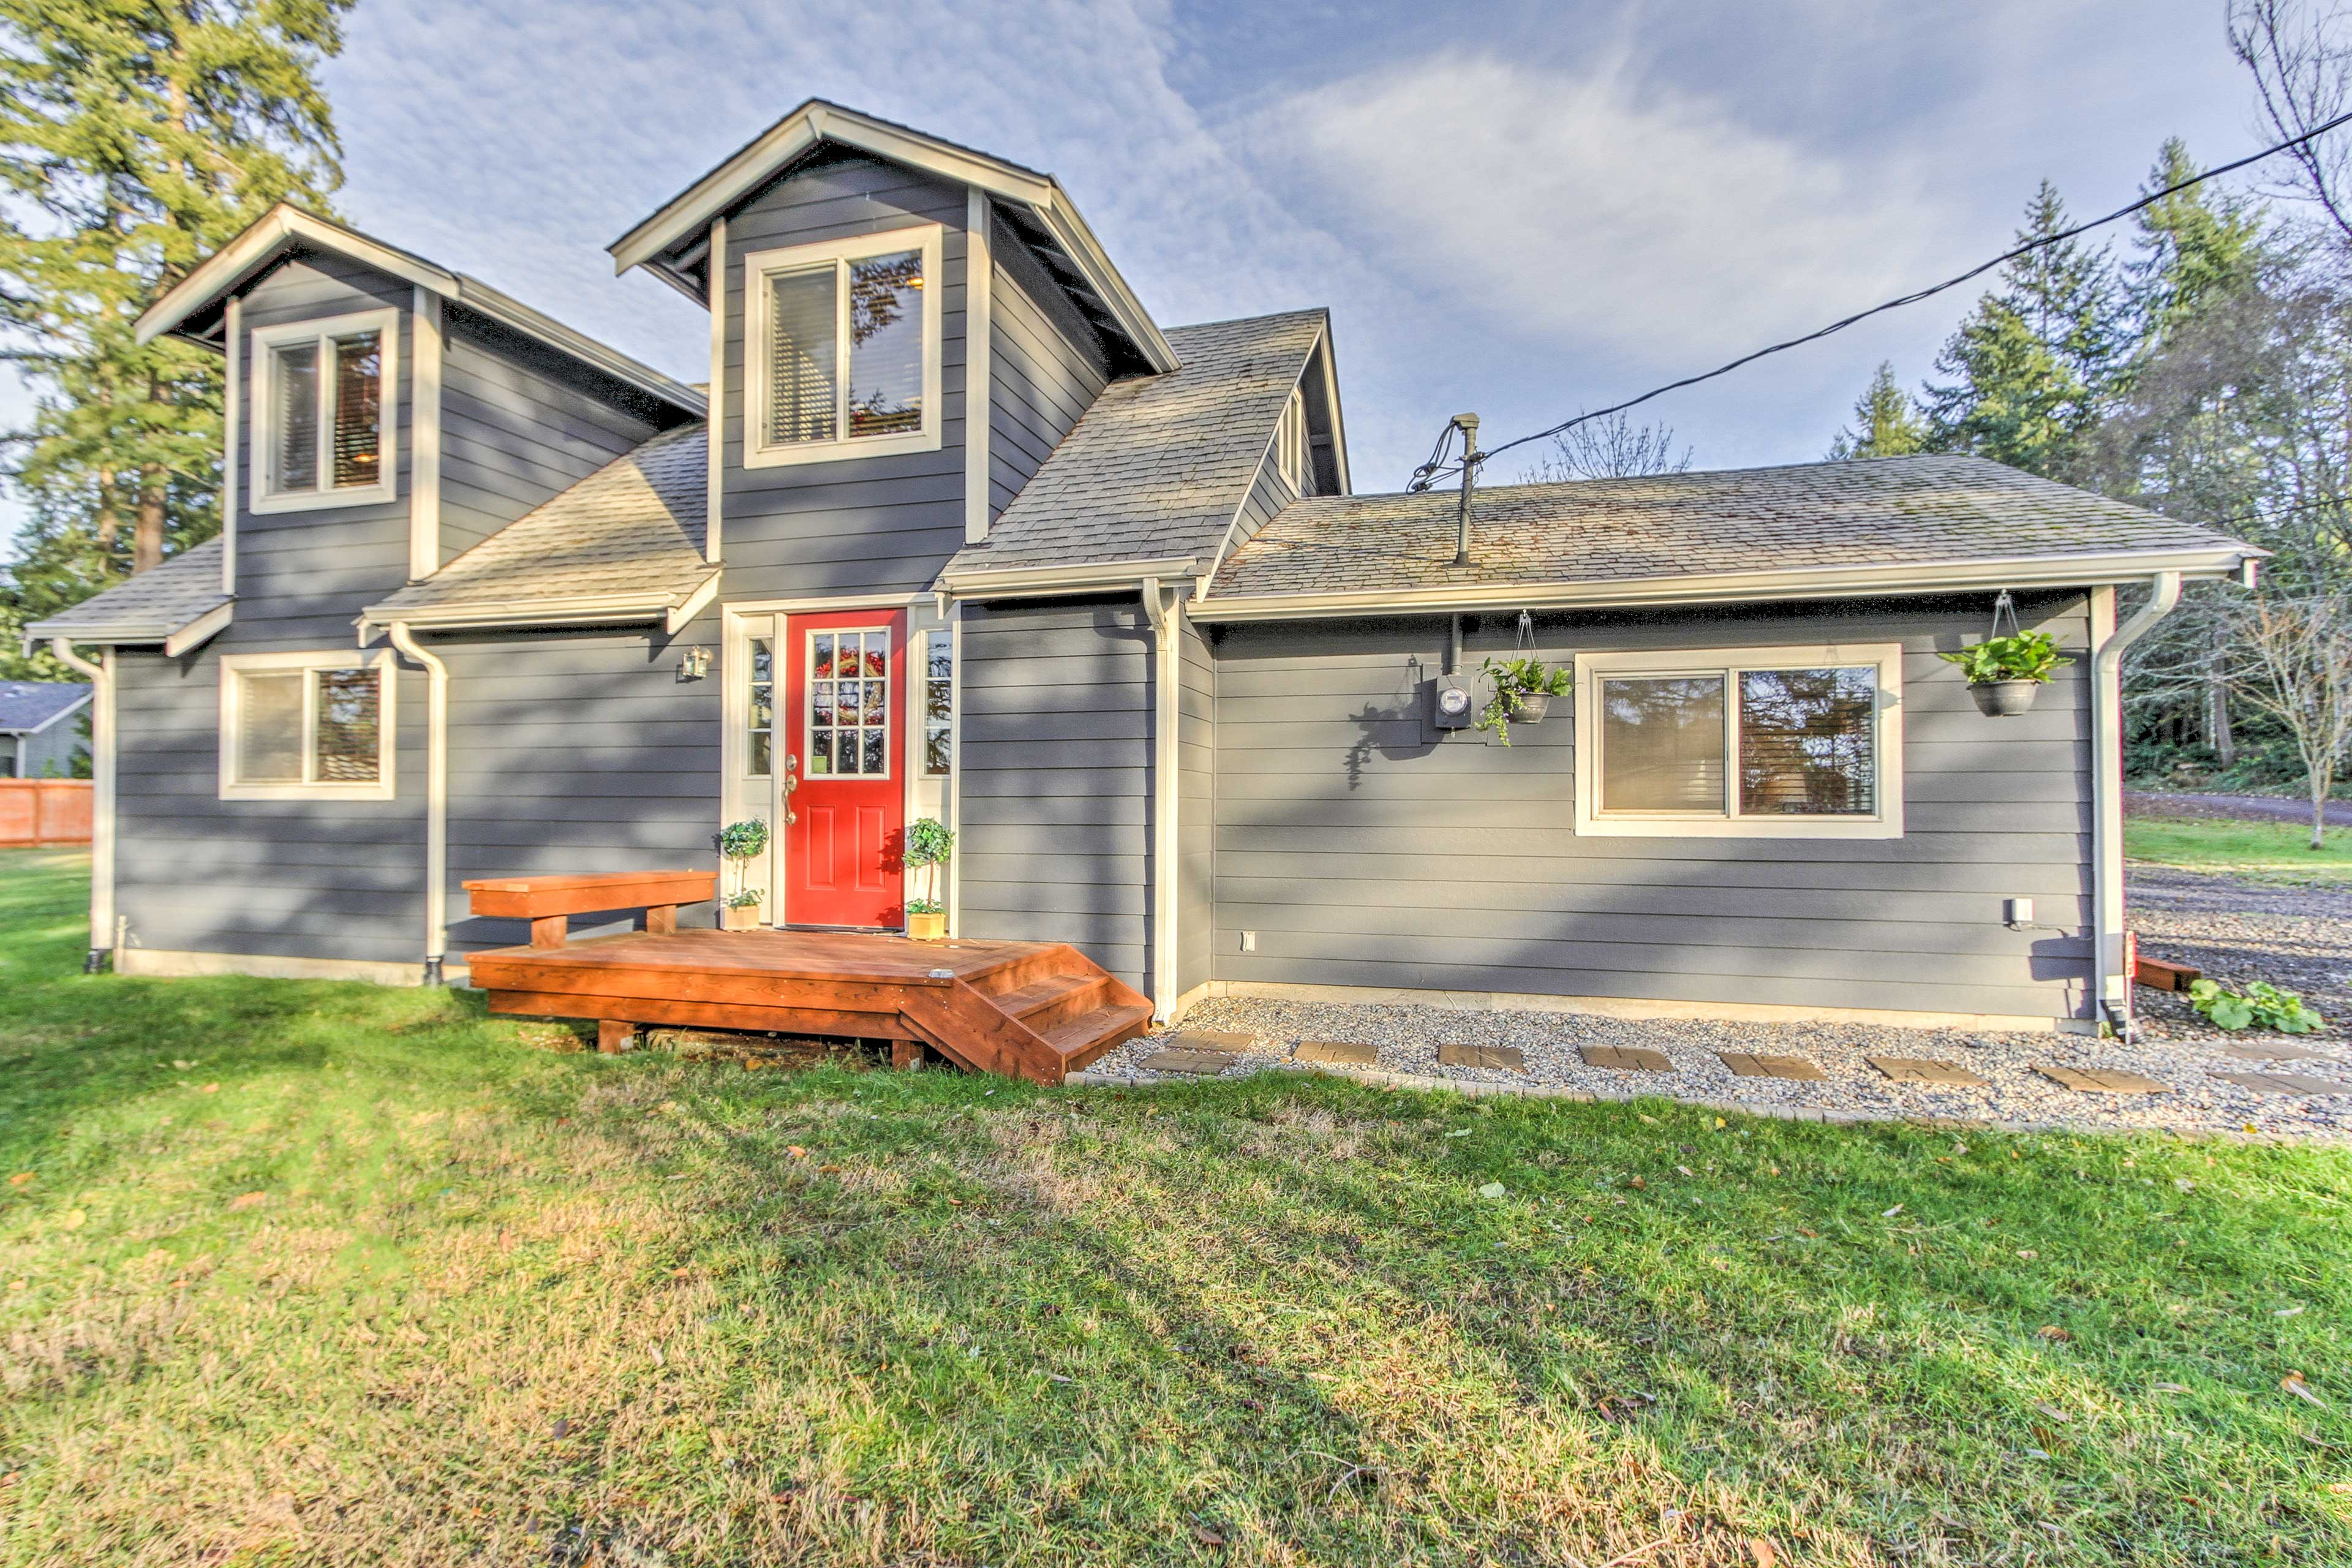 This home is located in a quiet neighborhood and is only 2 miles from downtown.